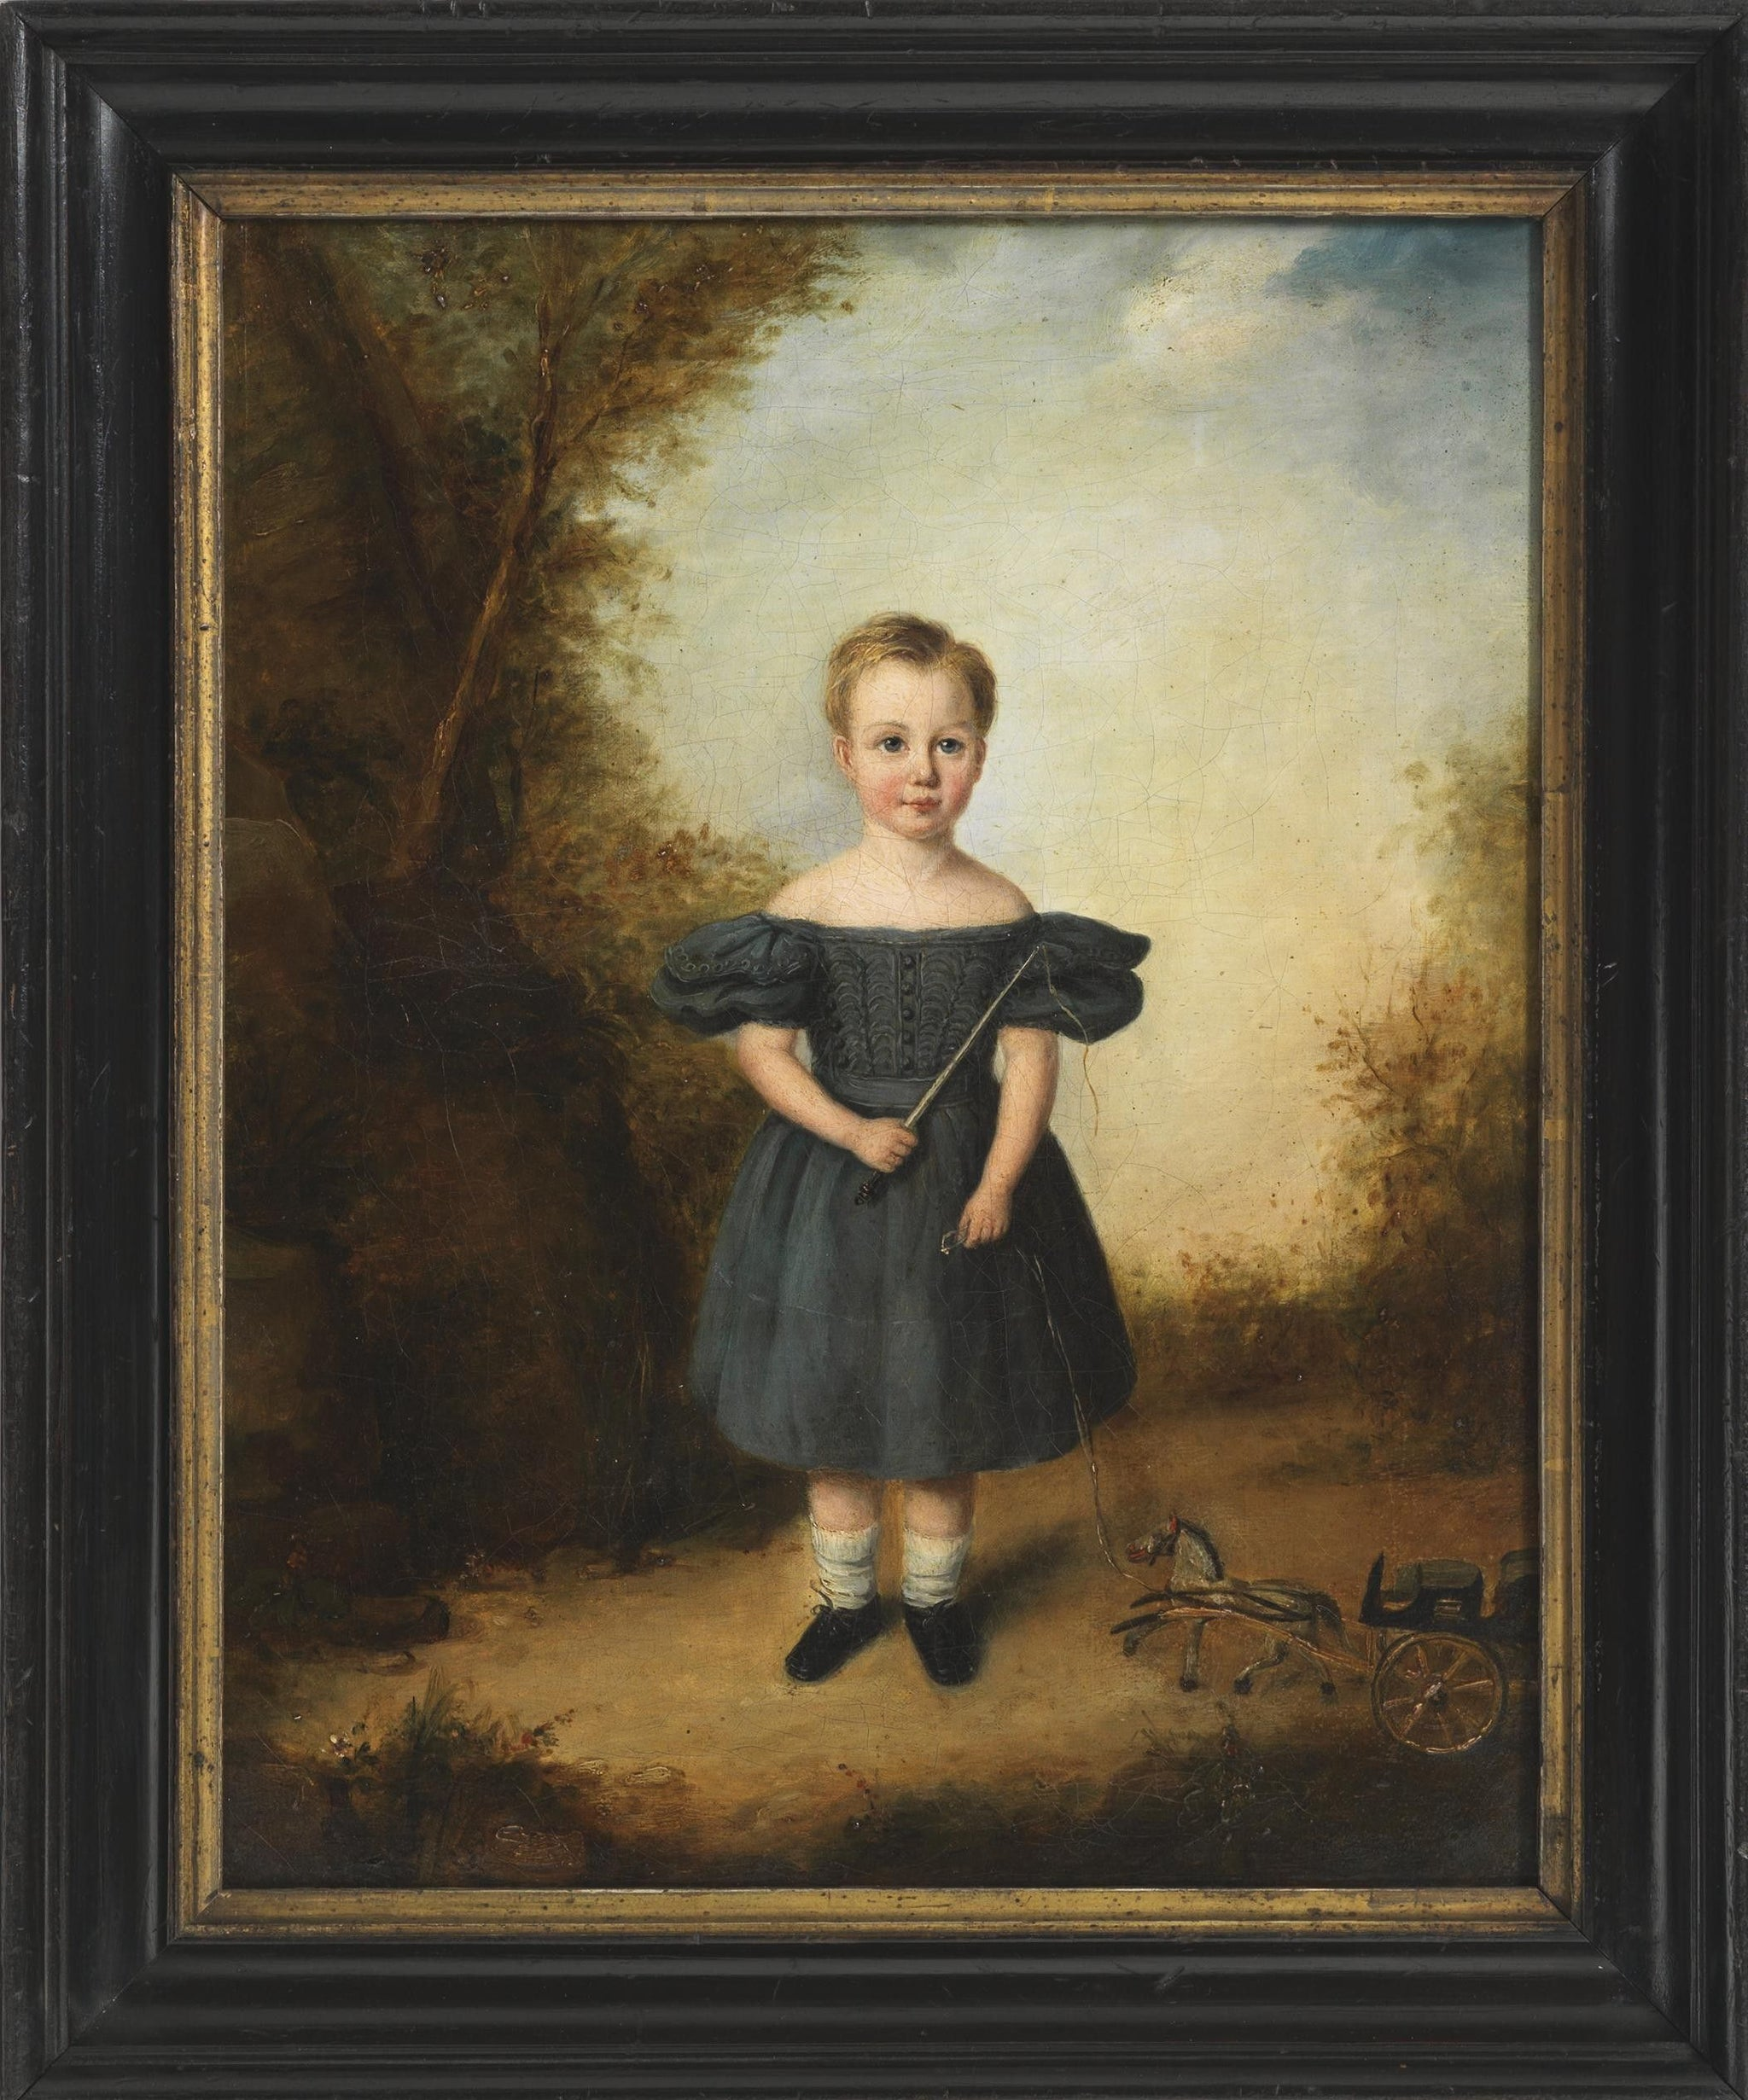 Portrait Of A Child With Toy Horse and Cart